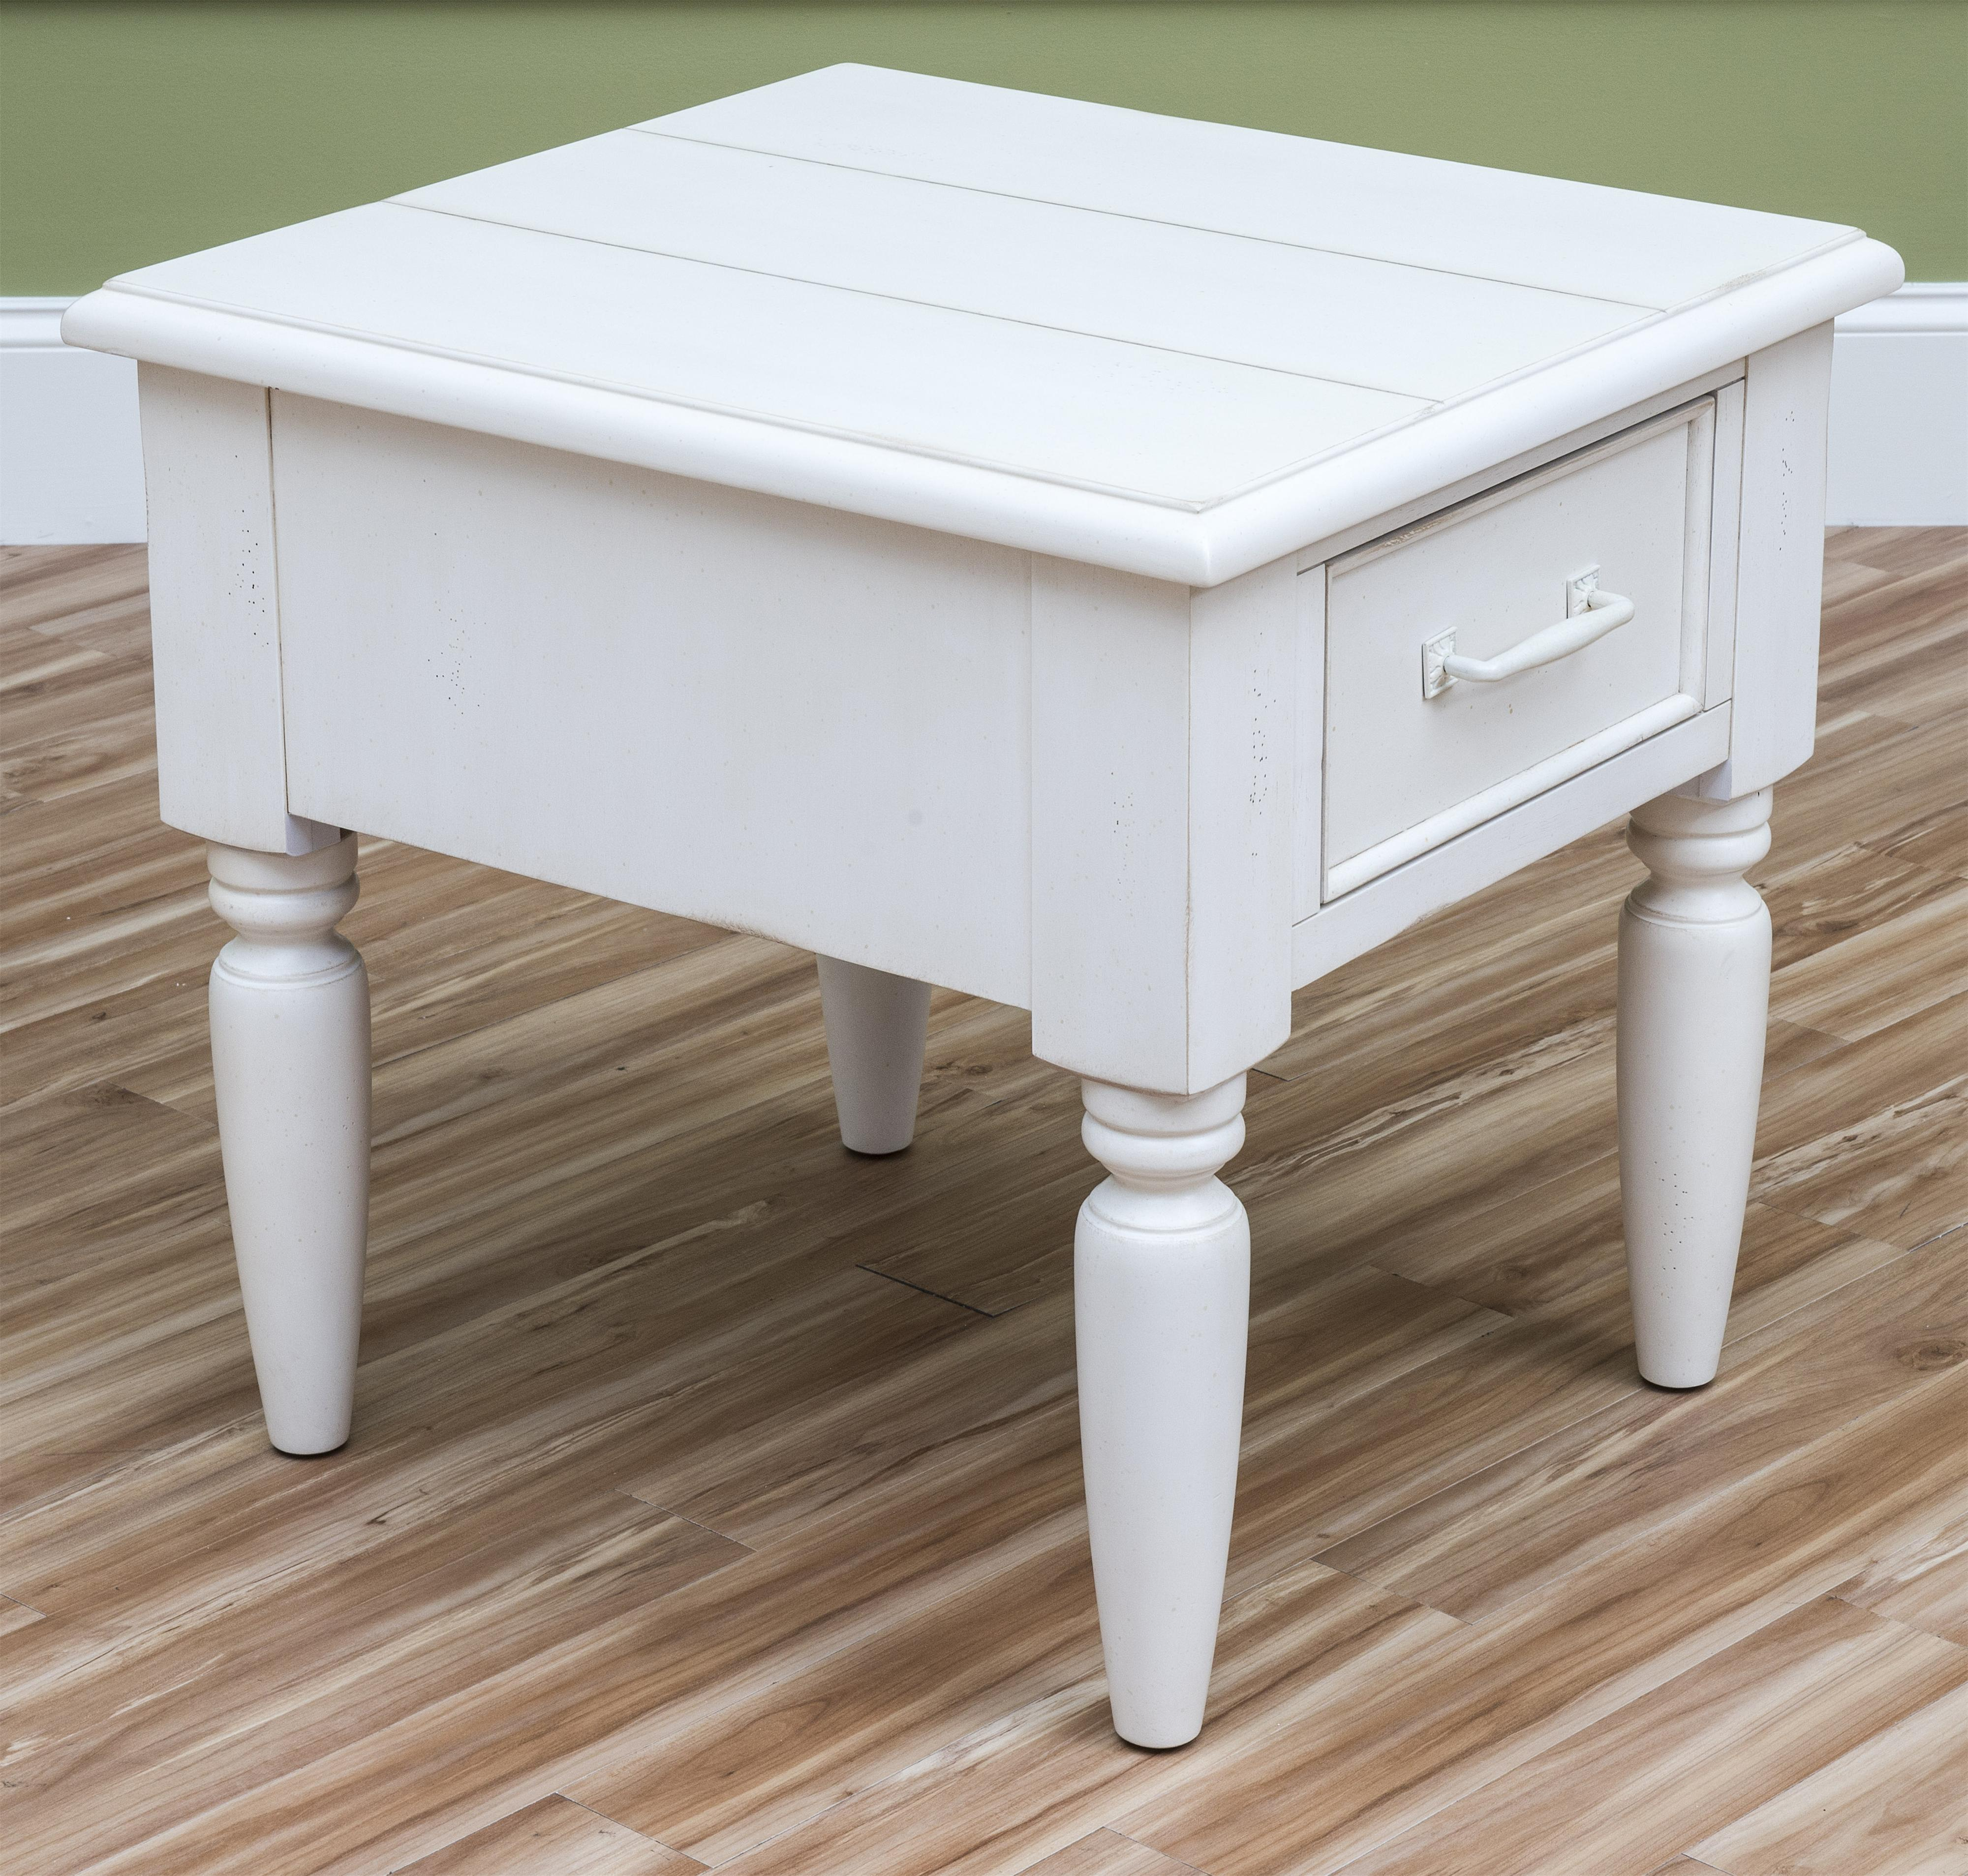 Easton Collection Sea Breeze Beachcomber-White End Table - Item Number: 424-809 ETBL